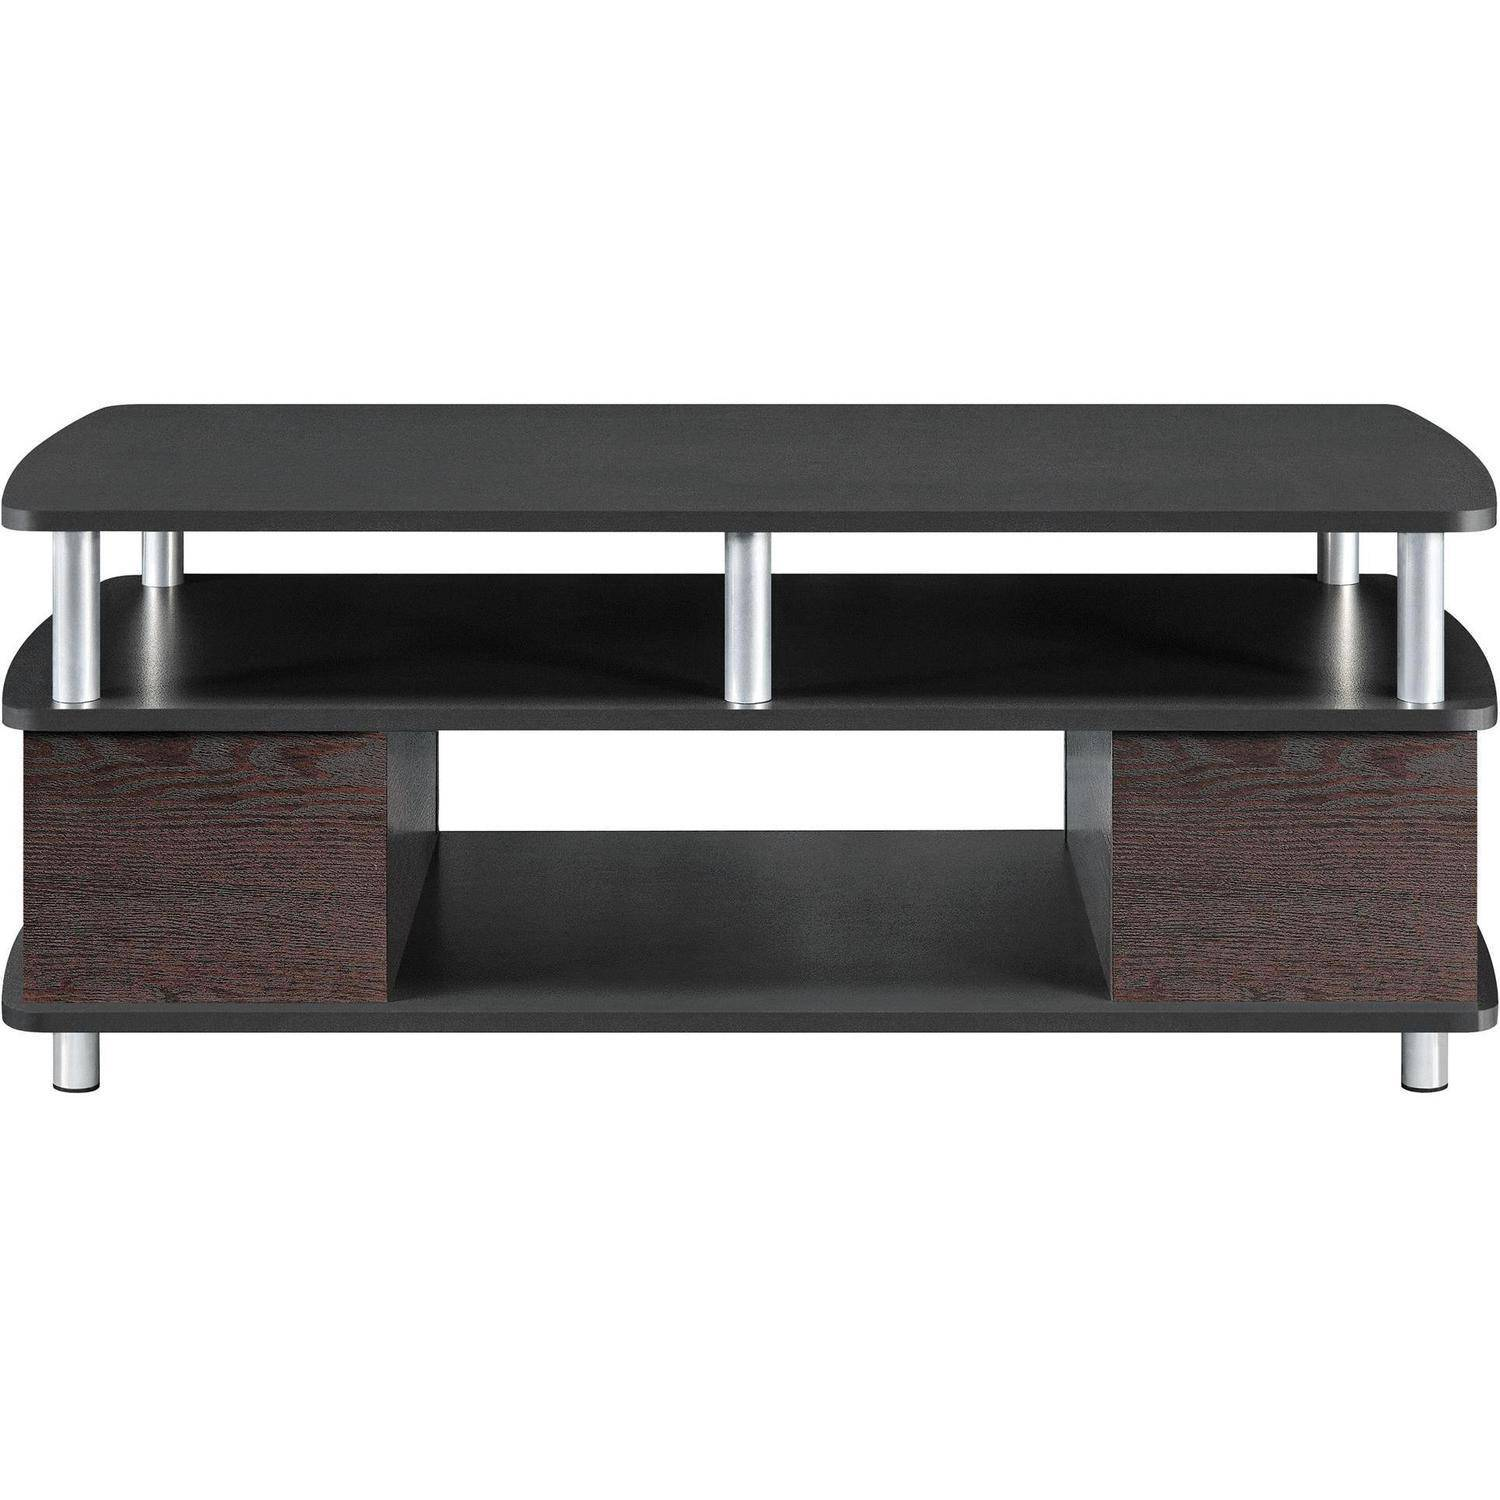 Black and wood coffee table - Black And Wood Coffee Table 55